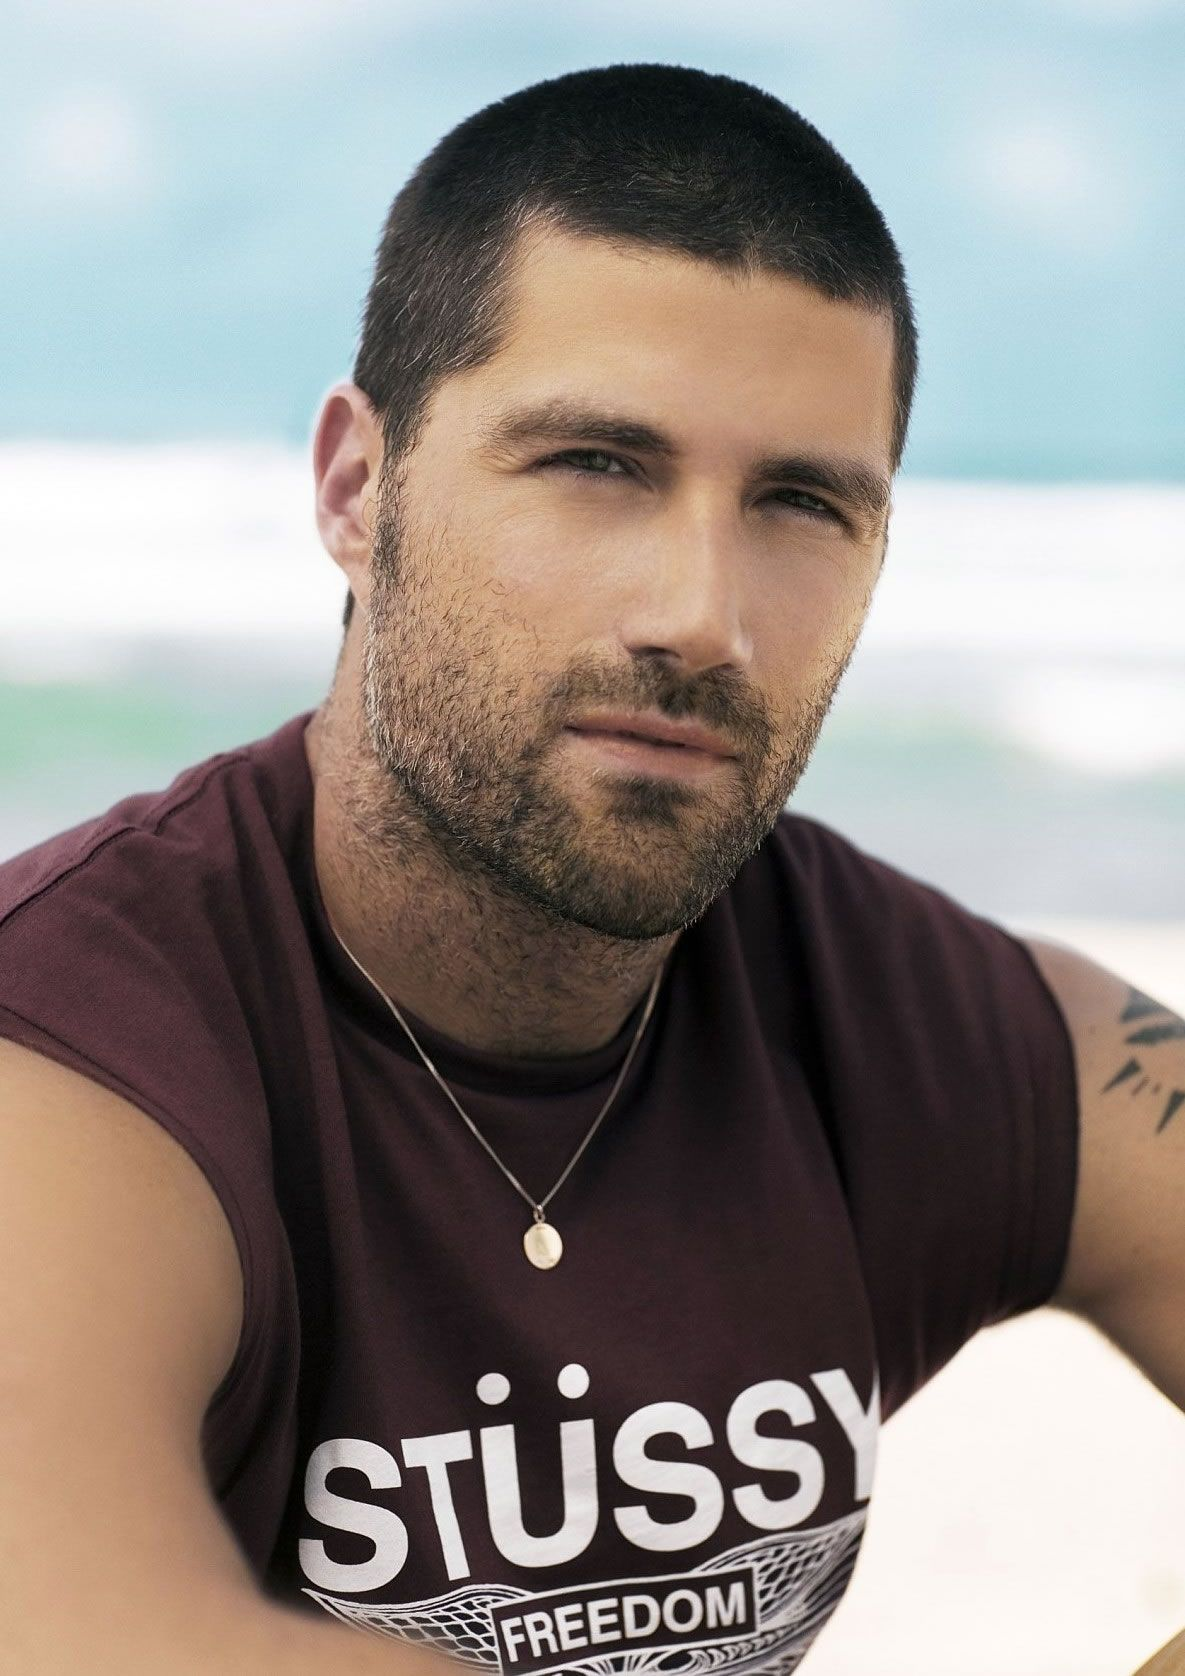 matthew fox fotomatthew fox height, matthew fox lost, matthew fox tattoos, matthew fox arsenal, matthew fox evangeline lilly, matthew fox twitter, matthew fox alex cross workout, matthew fox photos, matthew fox football, matthew fox cancer, matthew fox mma, matthew fox foto, matthew fox linkedin, matthew fox news, matthew fox fan site, matthew fox l'oreal, matthew fox weight loss, matthew fox now, matthew fox instagram, matthew fox mass effect